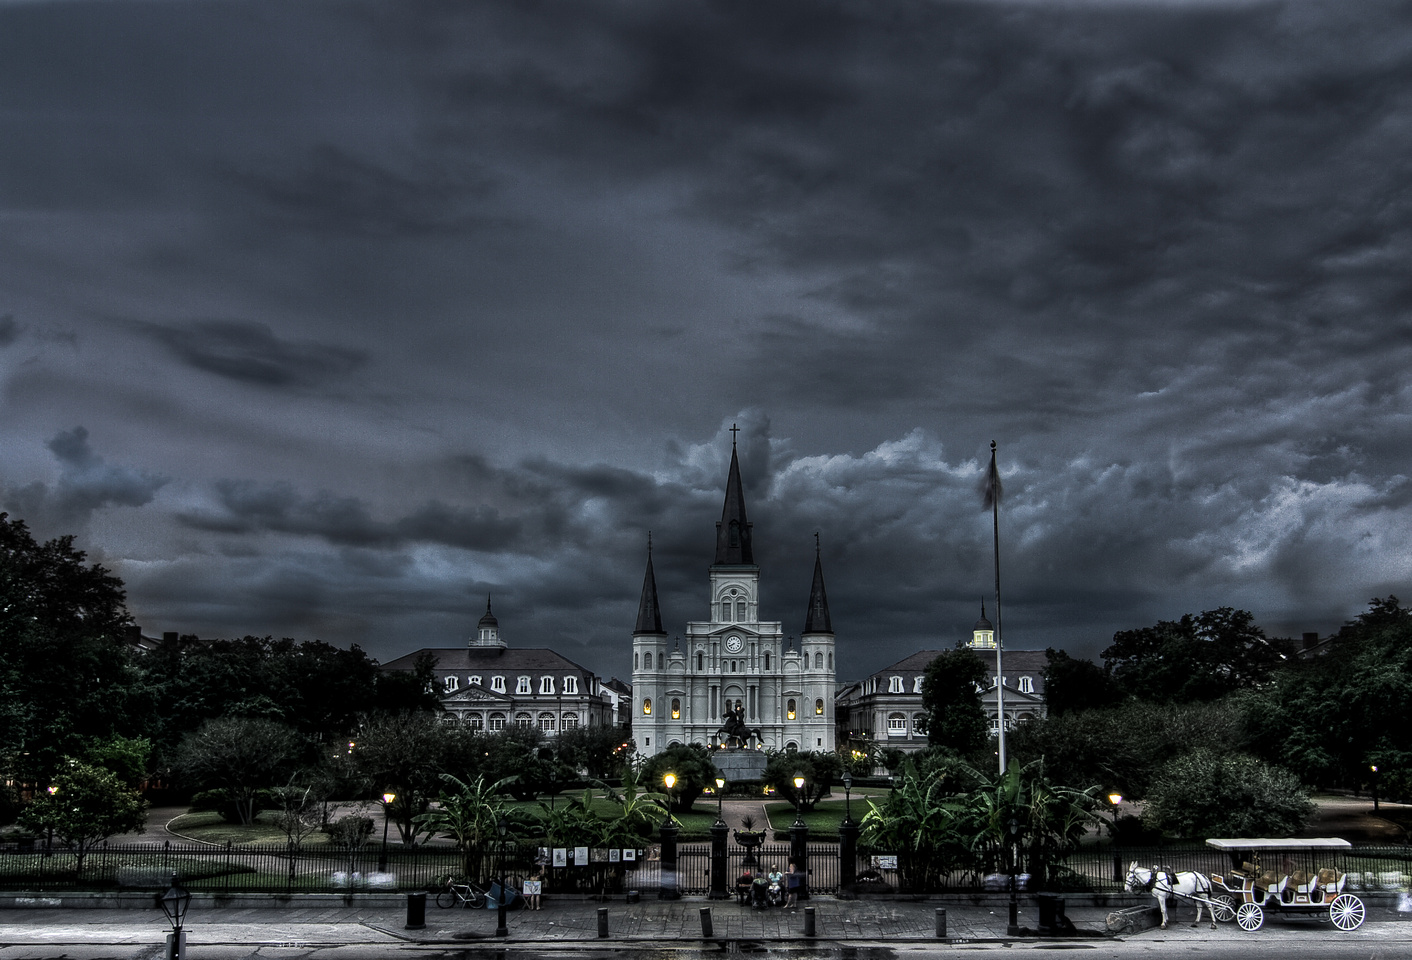 New Orleans Wallpaper Desktop - WallpaperSafari